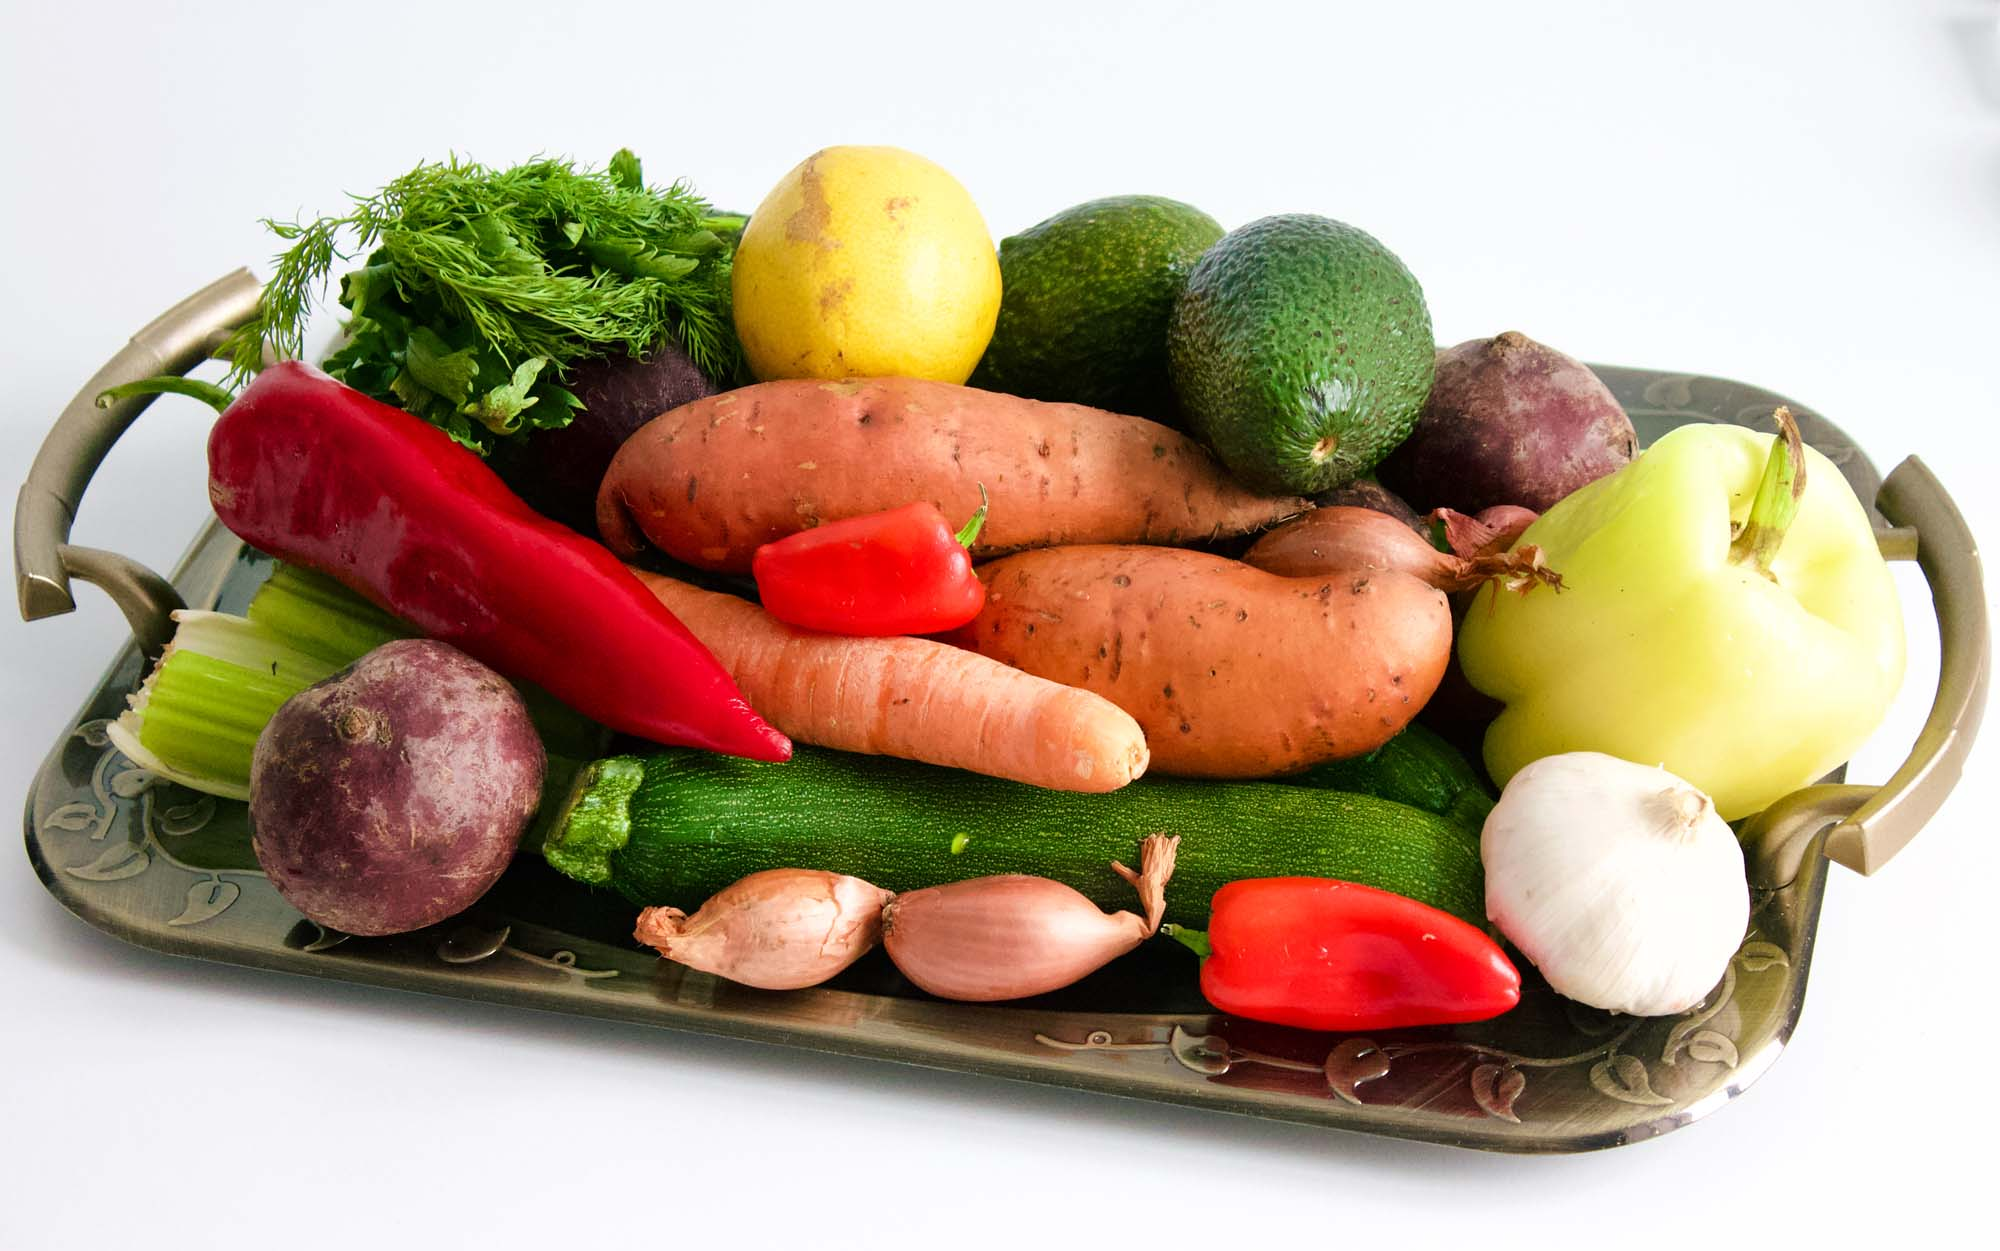 How To Buy Fruits And Veggies On A Budget - Tray with vegetables on a white table.